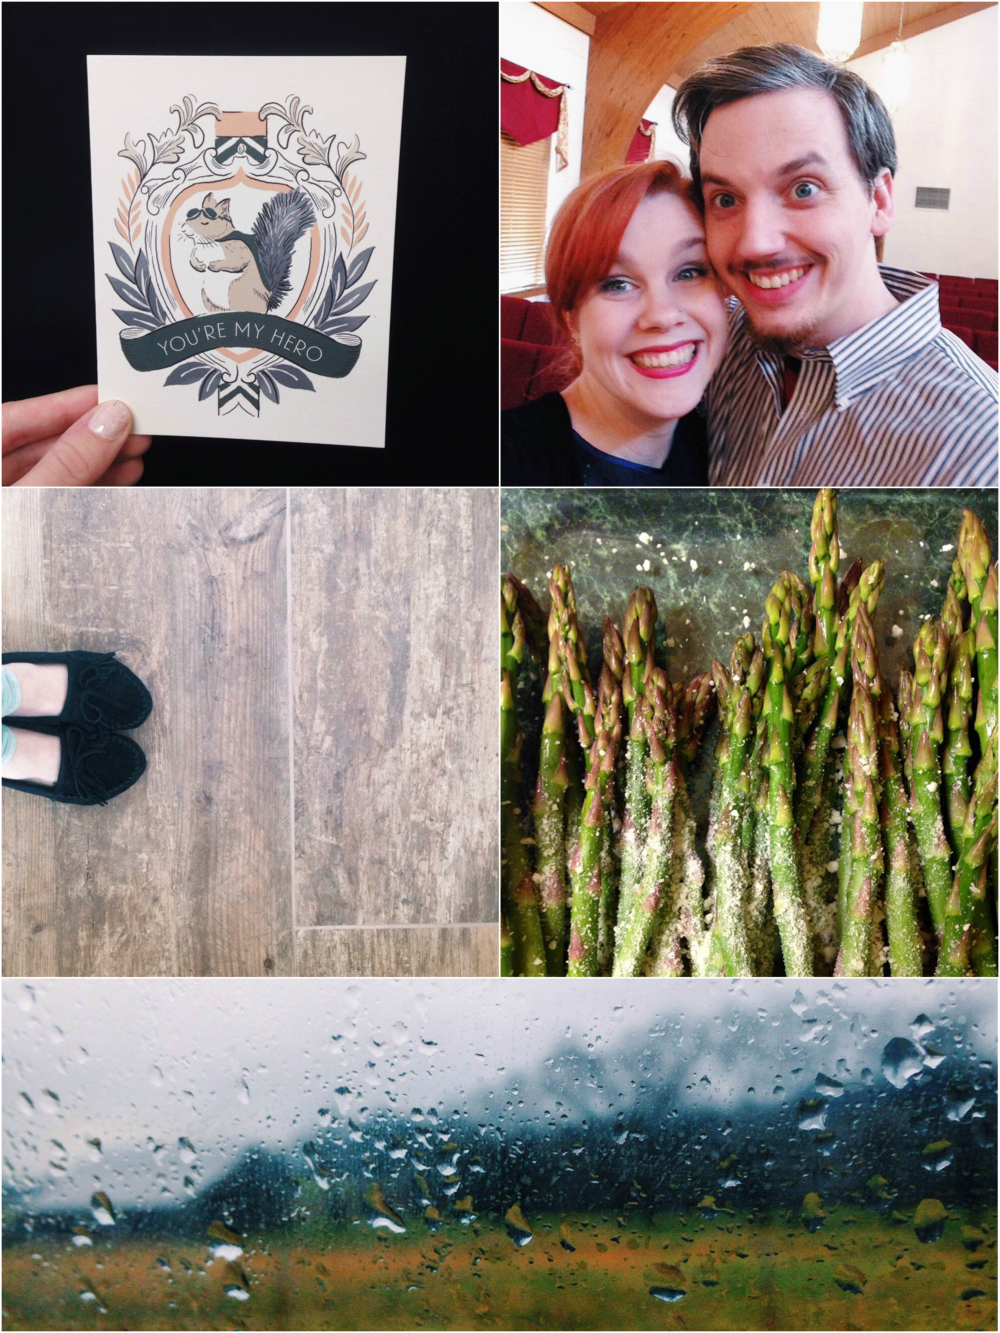 My Week in Review - Paper Swallow Events